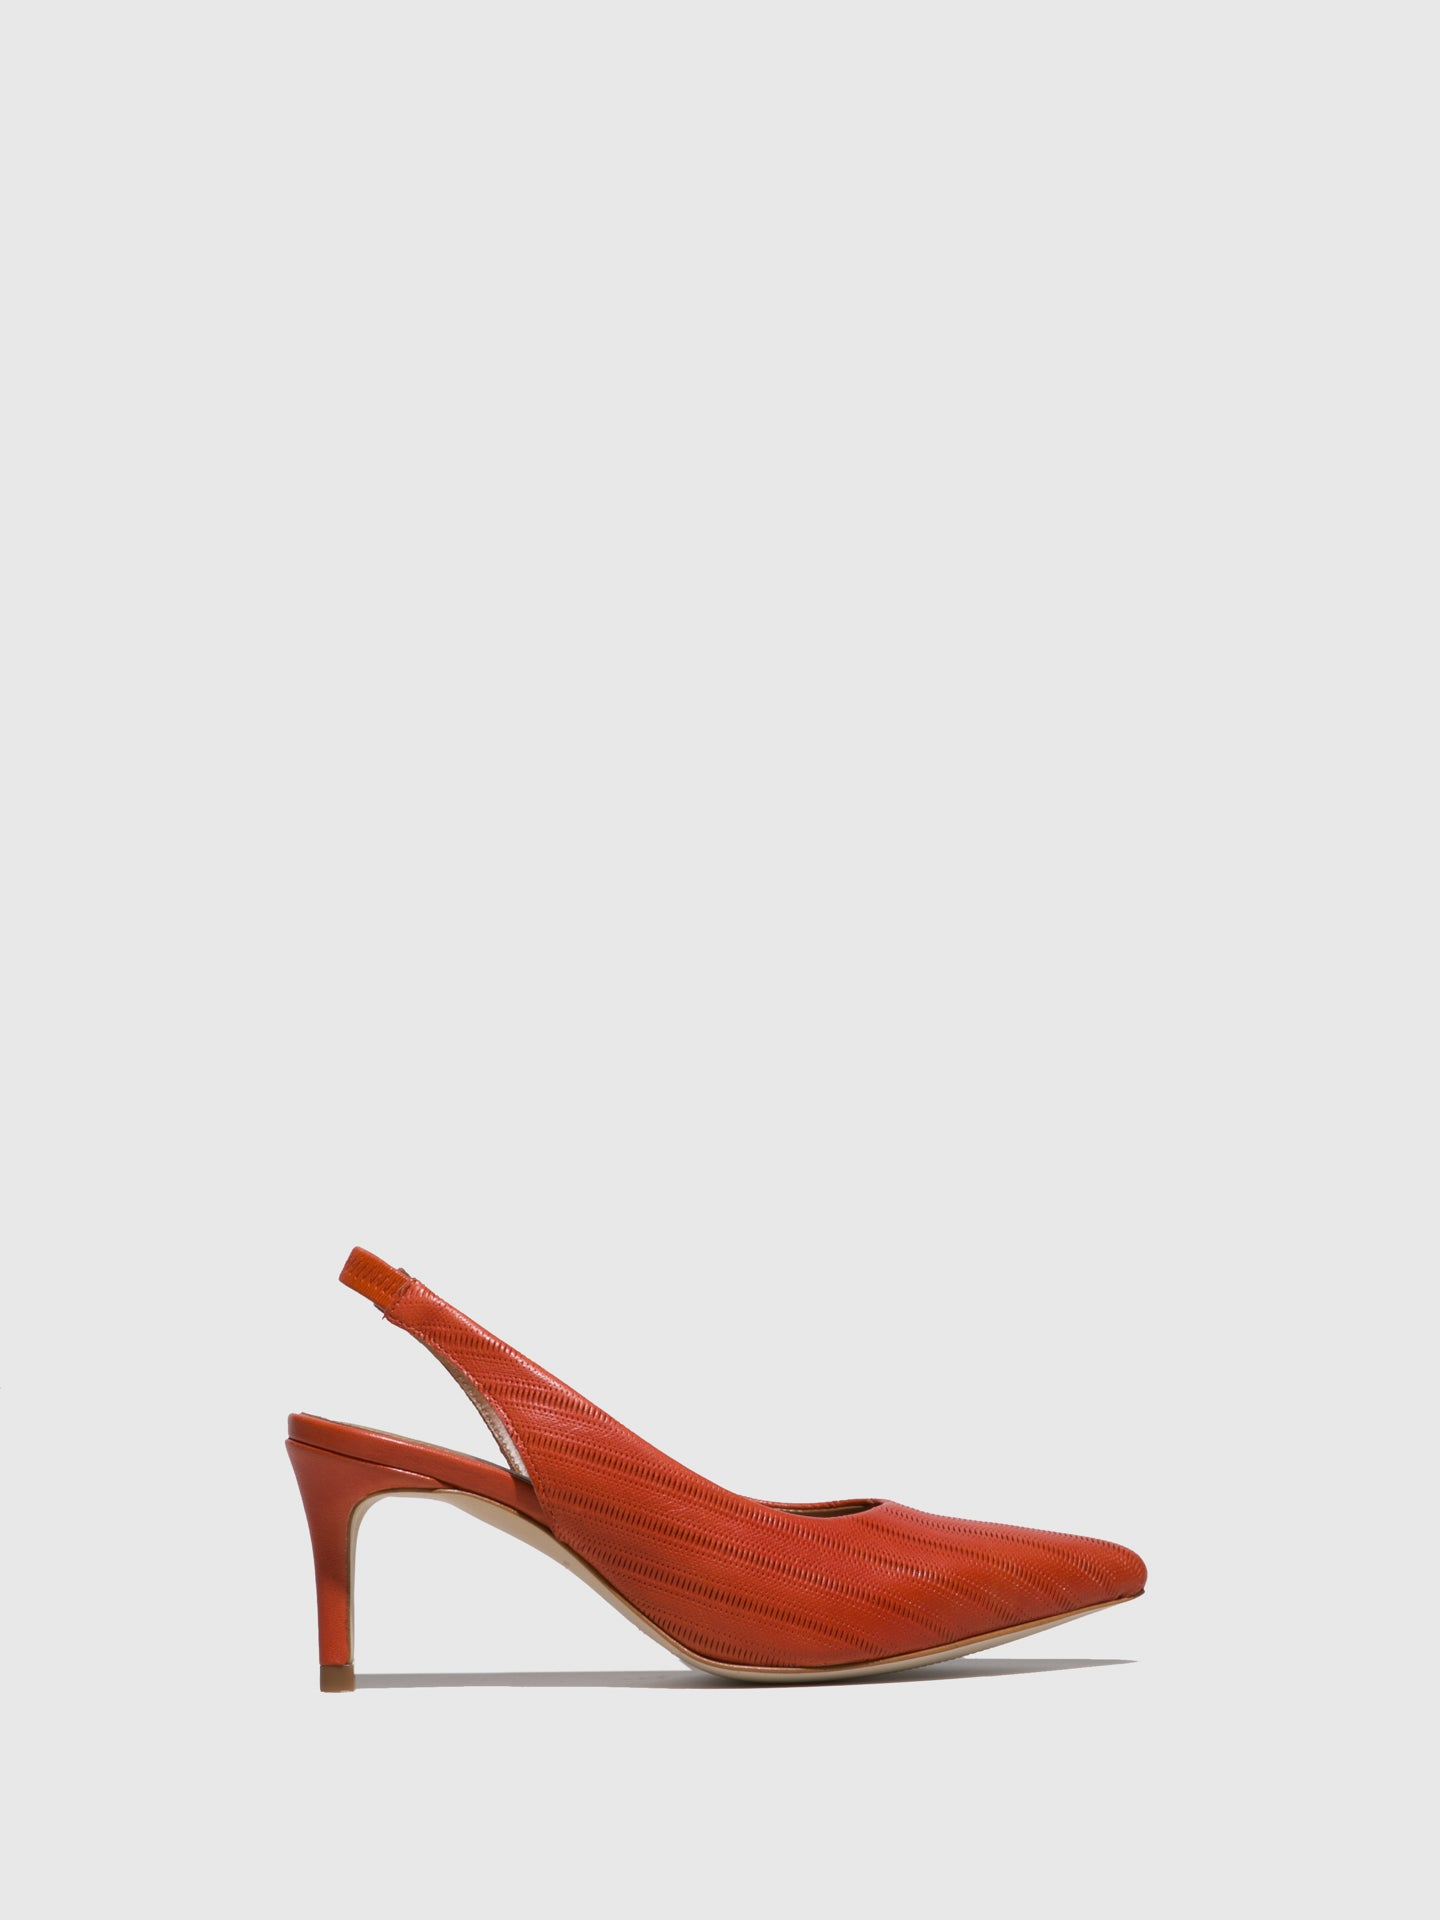 JJ Heitor Orange Leather Stiletto Mules